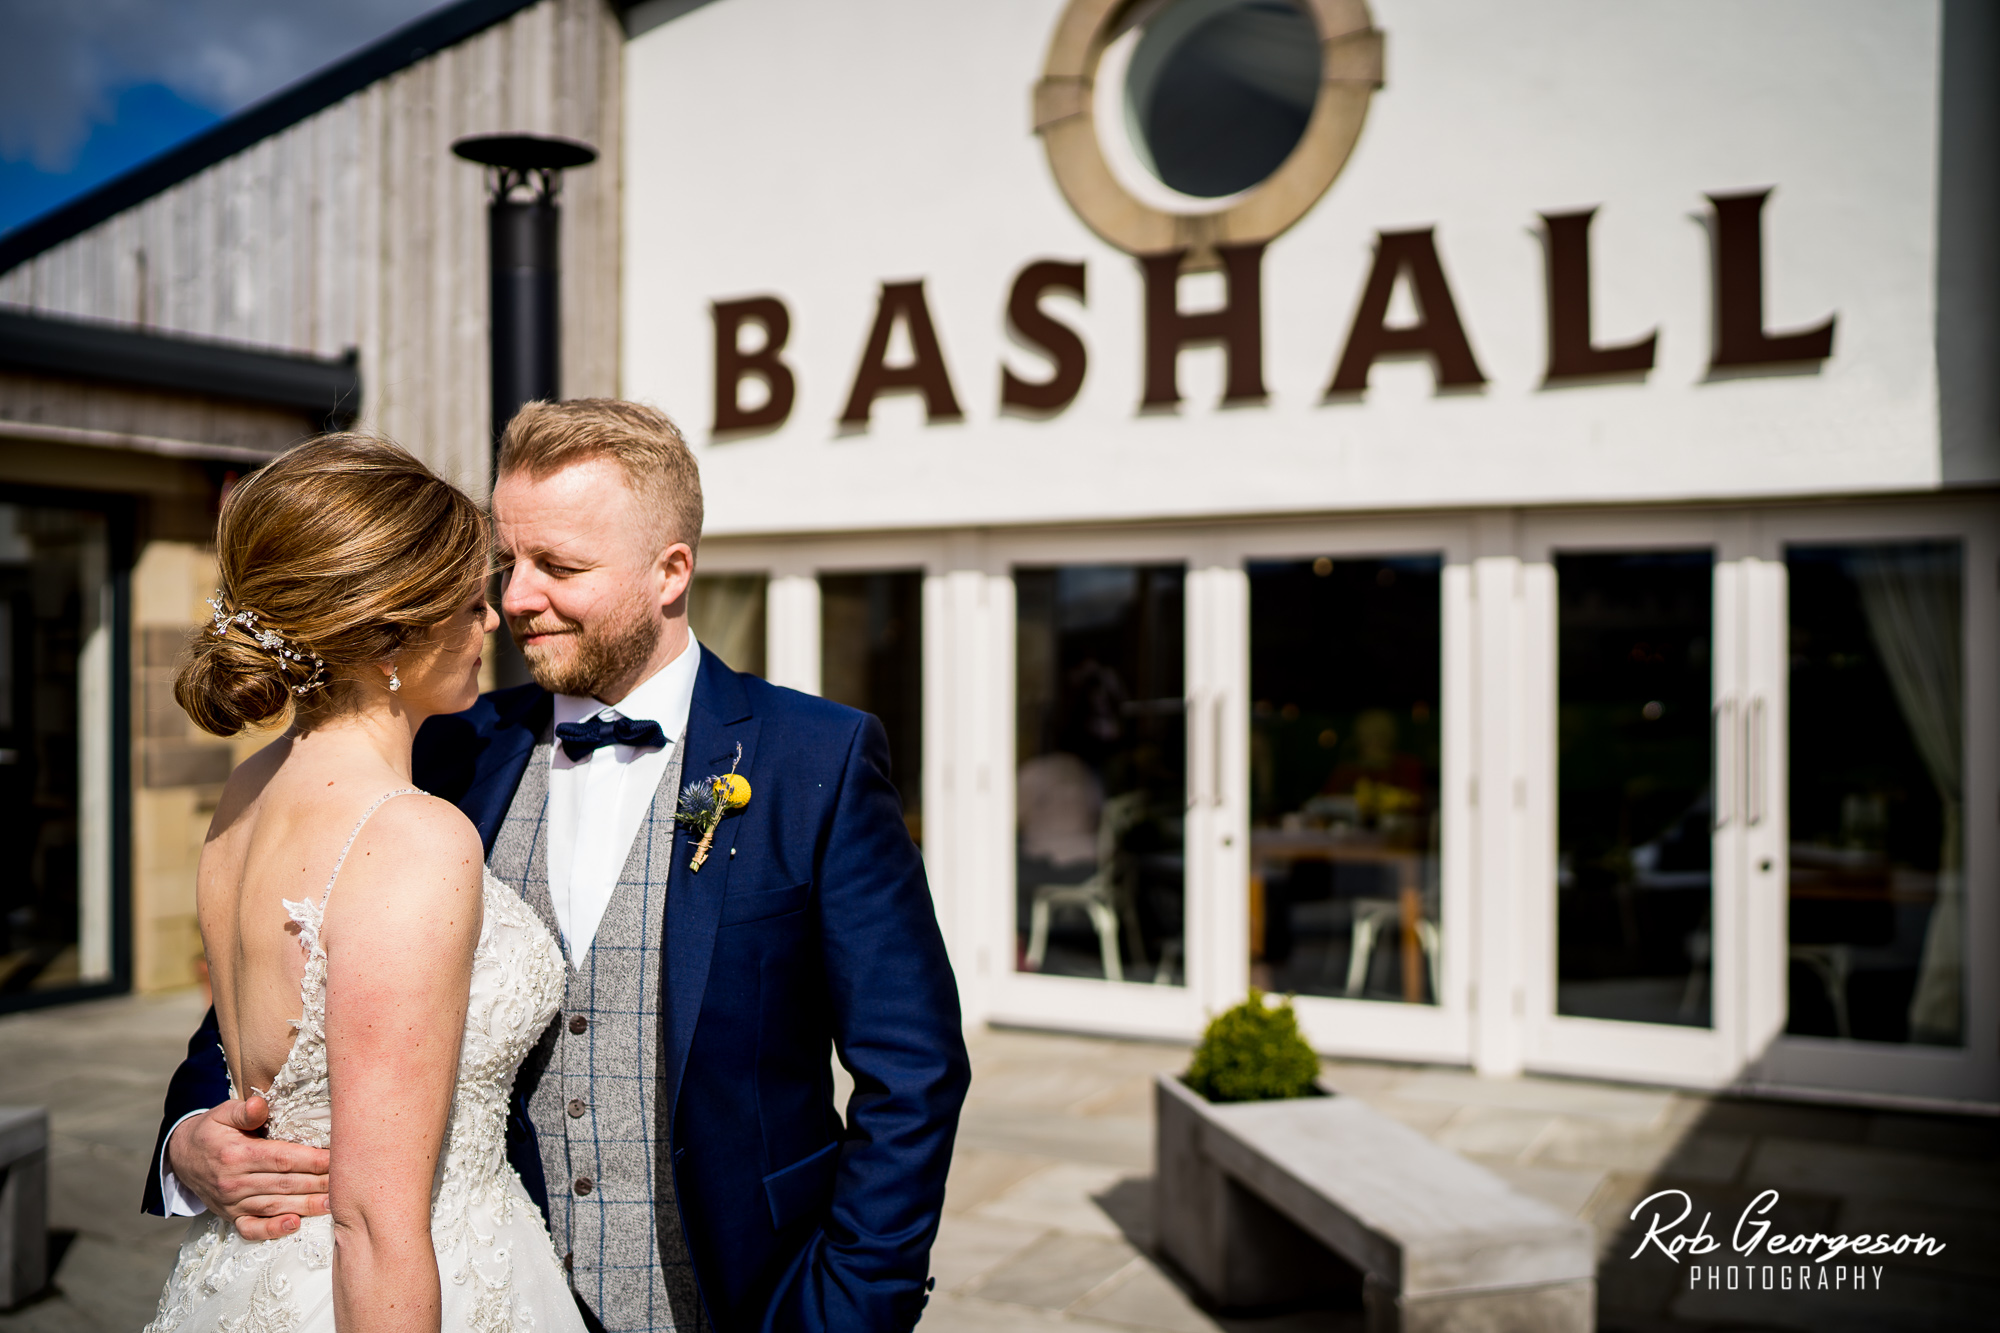 Bride and Groom married at Bashall Barn Wedding Venue